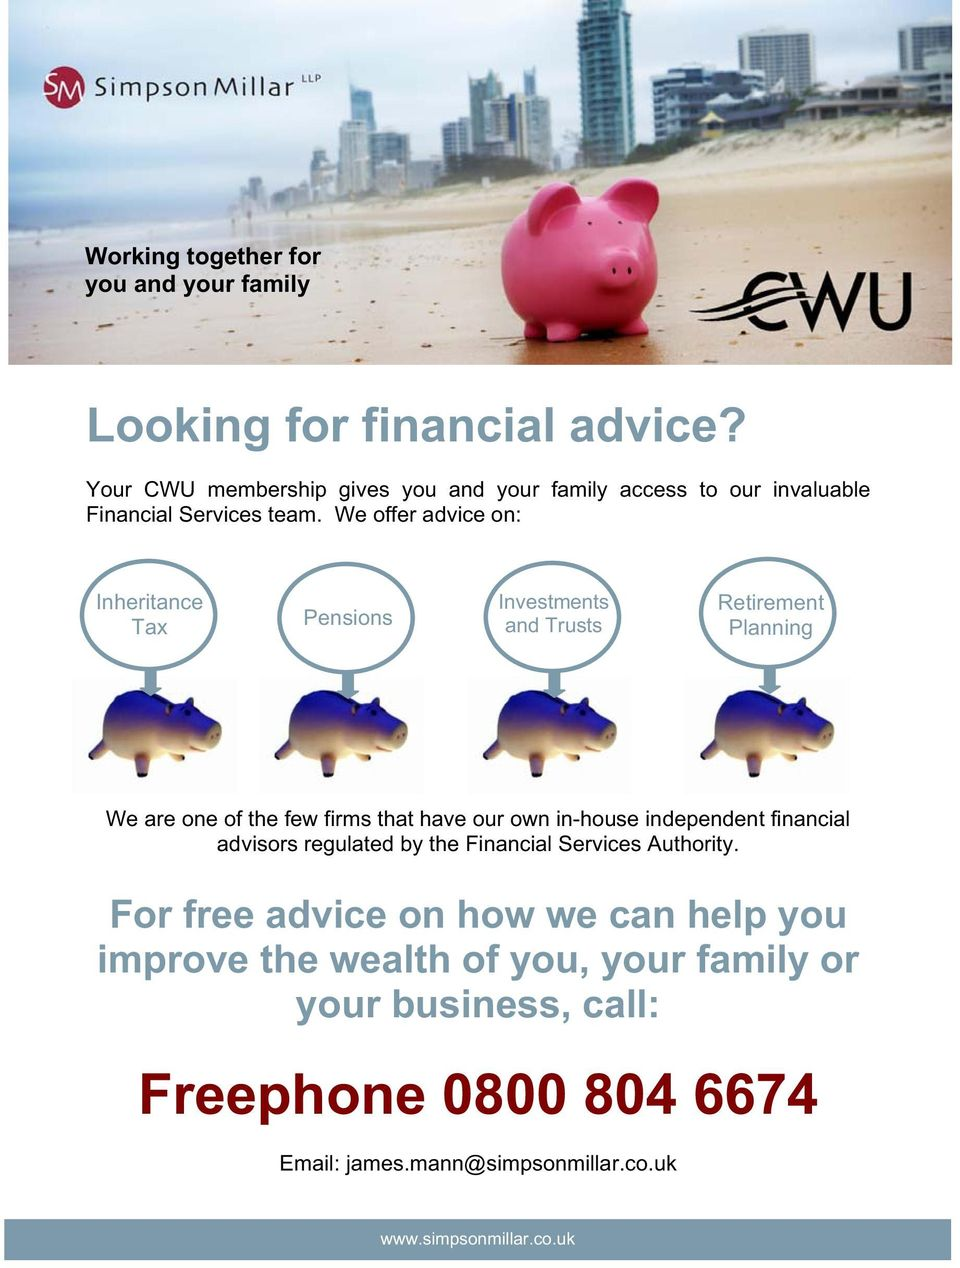 We offer advice on: Inheritance Tax Pensions Investments and Trusts Retirement Planning We are one of the few firms that have our